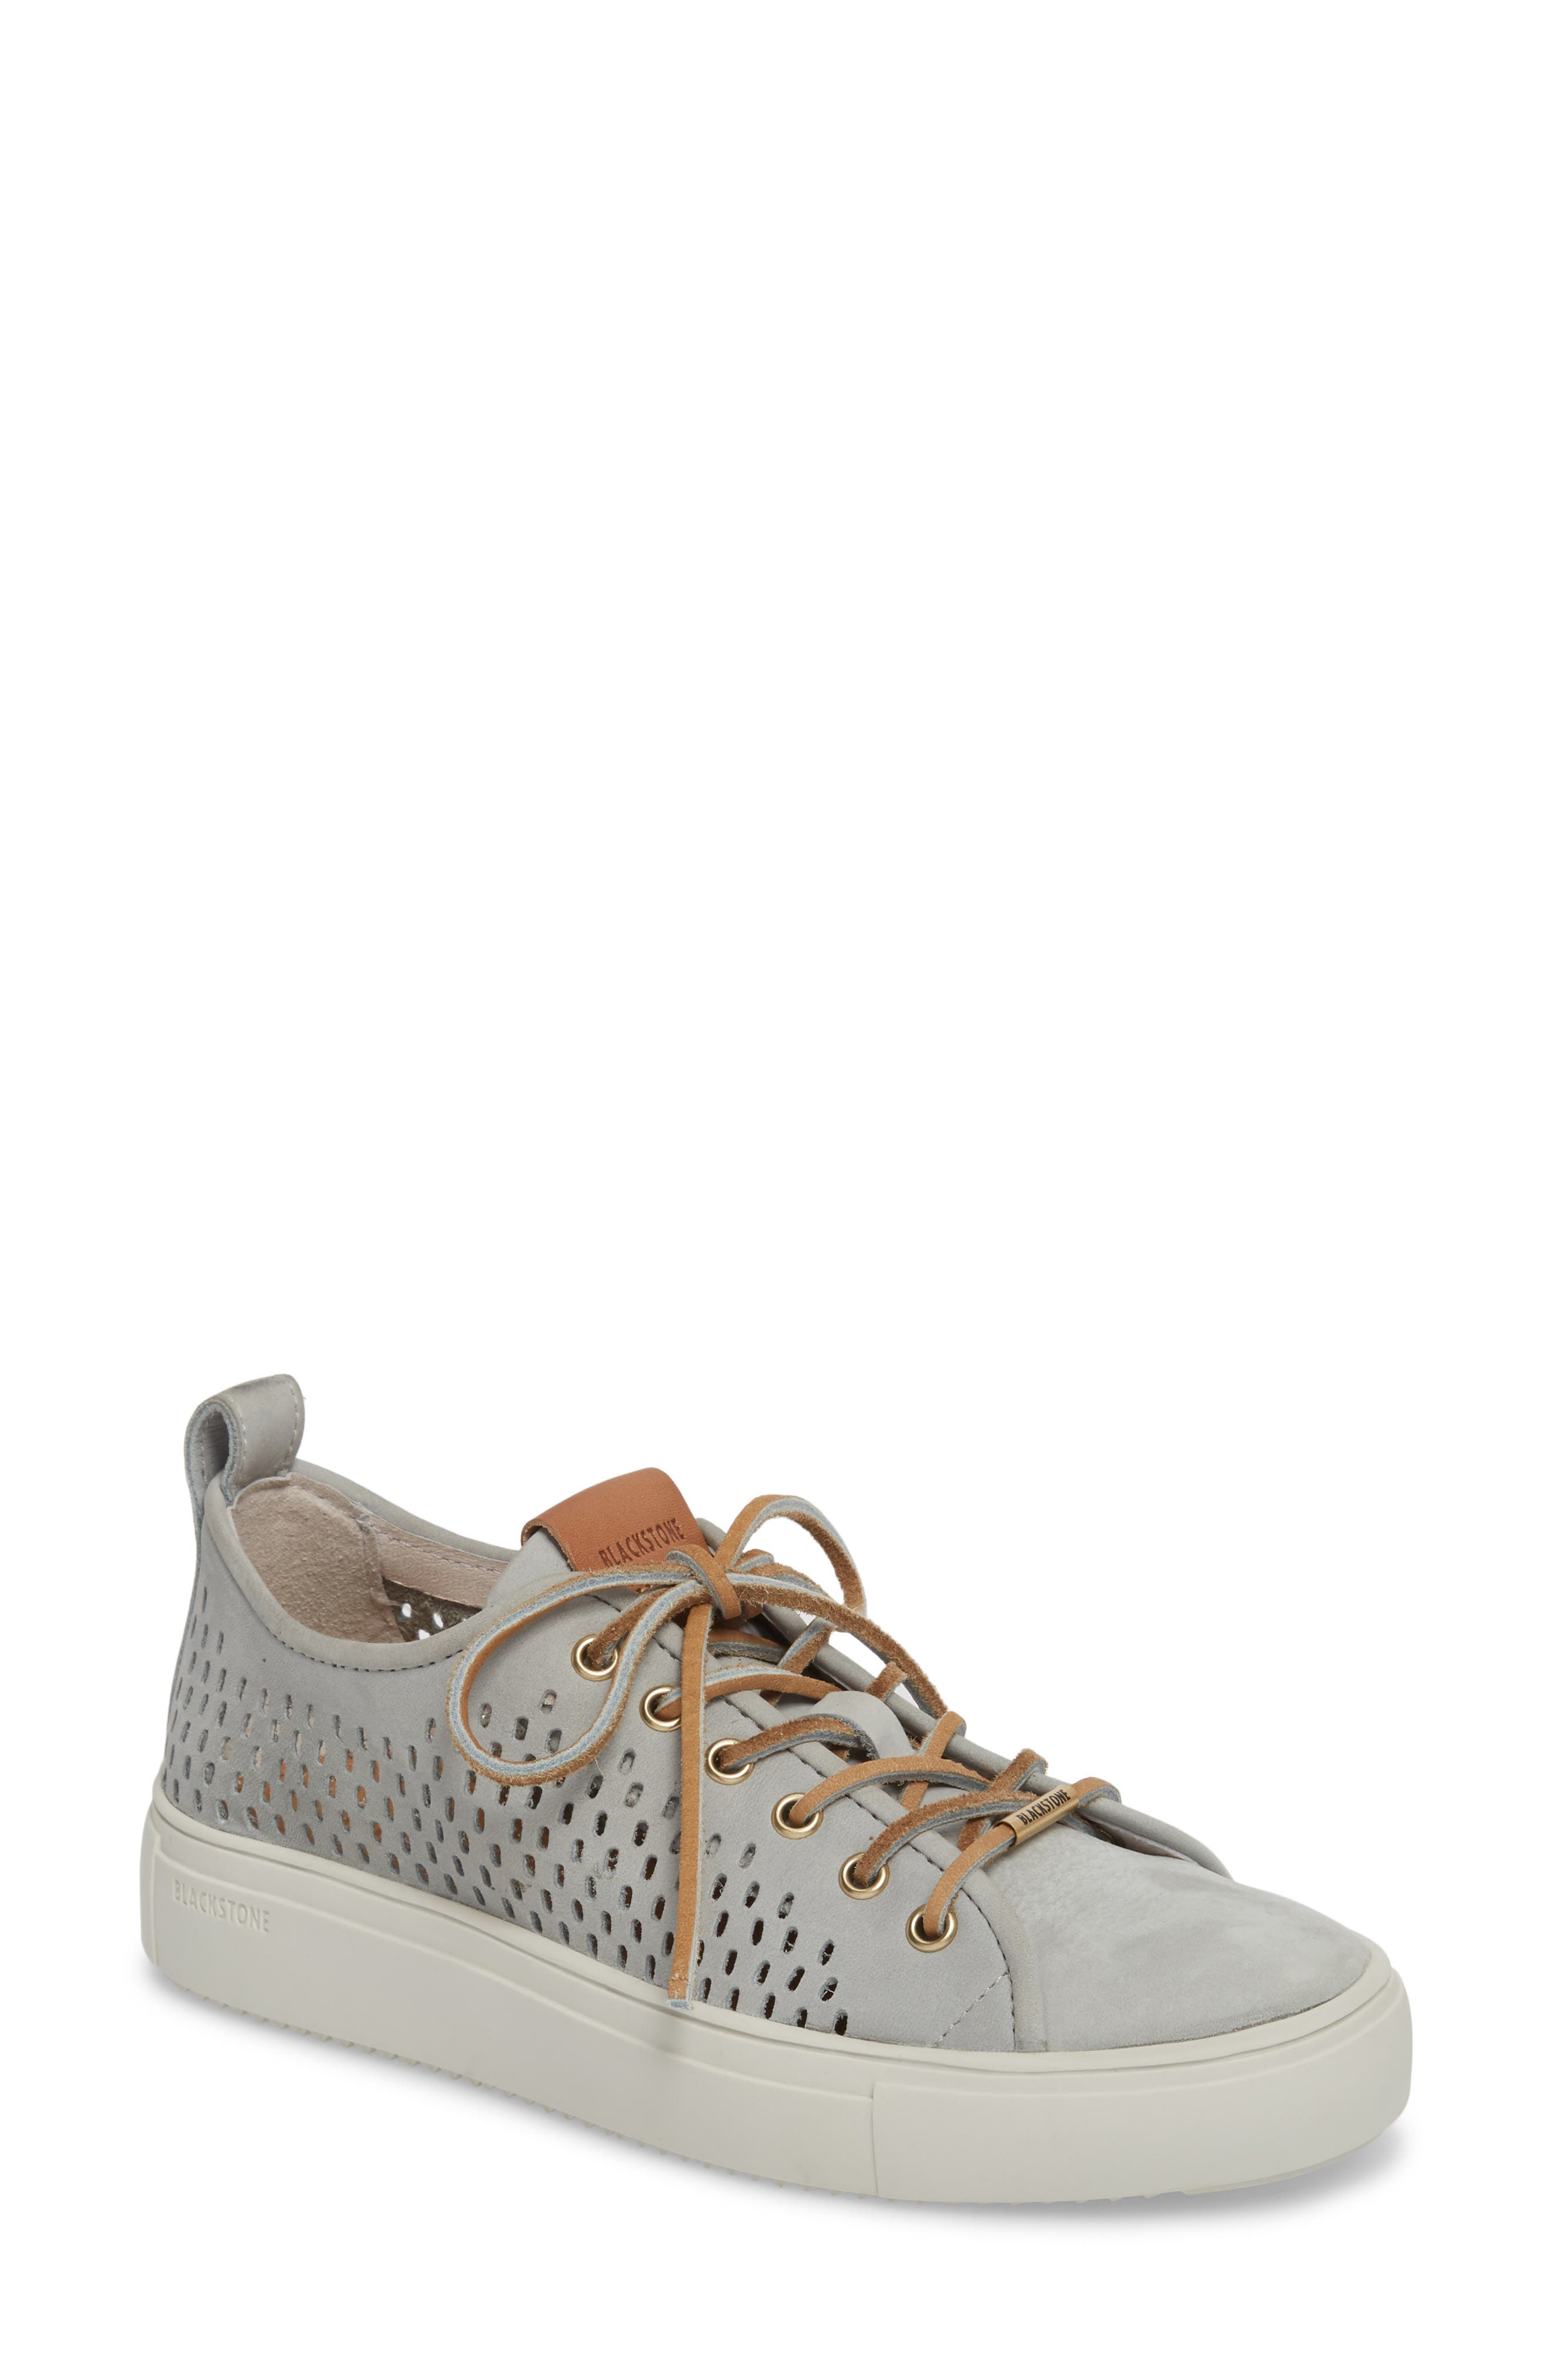 PL87 Sneaker,                         Main,                         color, LIMESTONE LEATHER